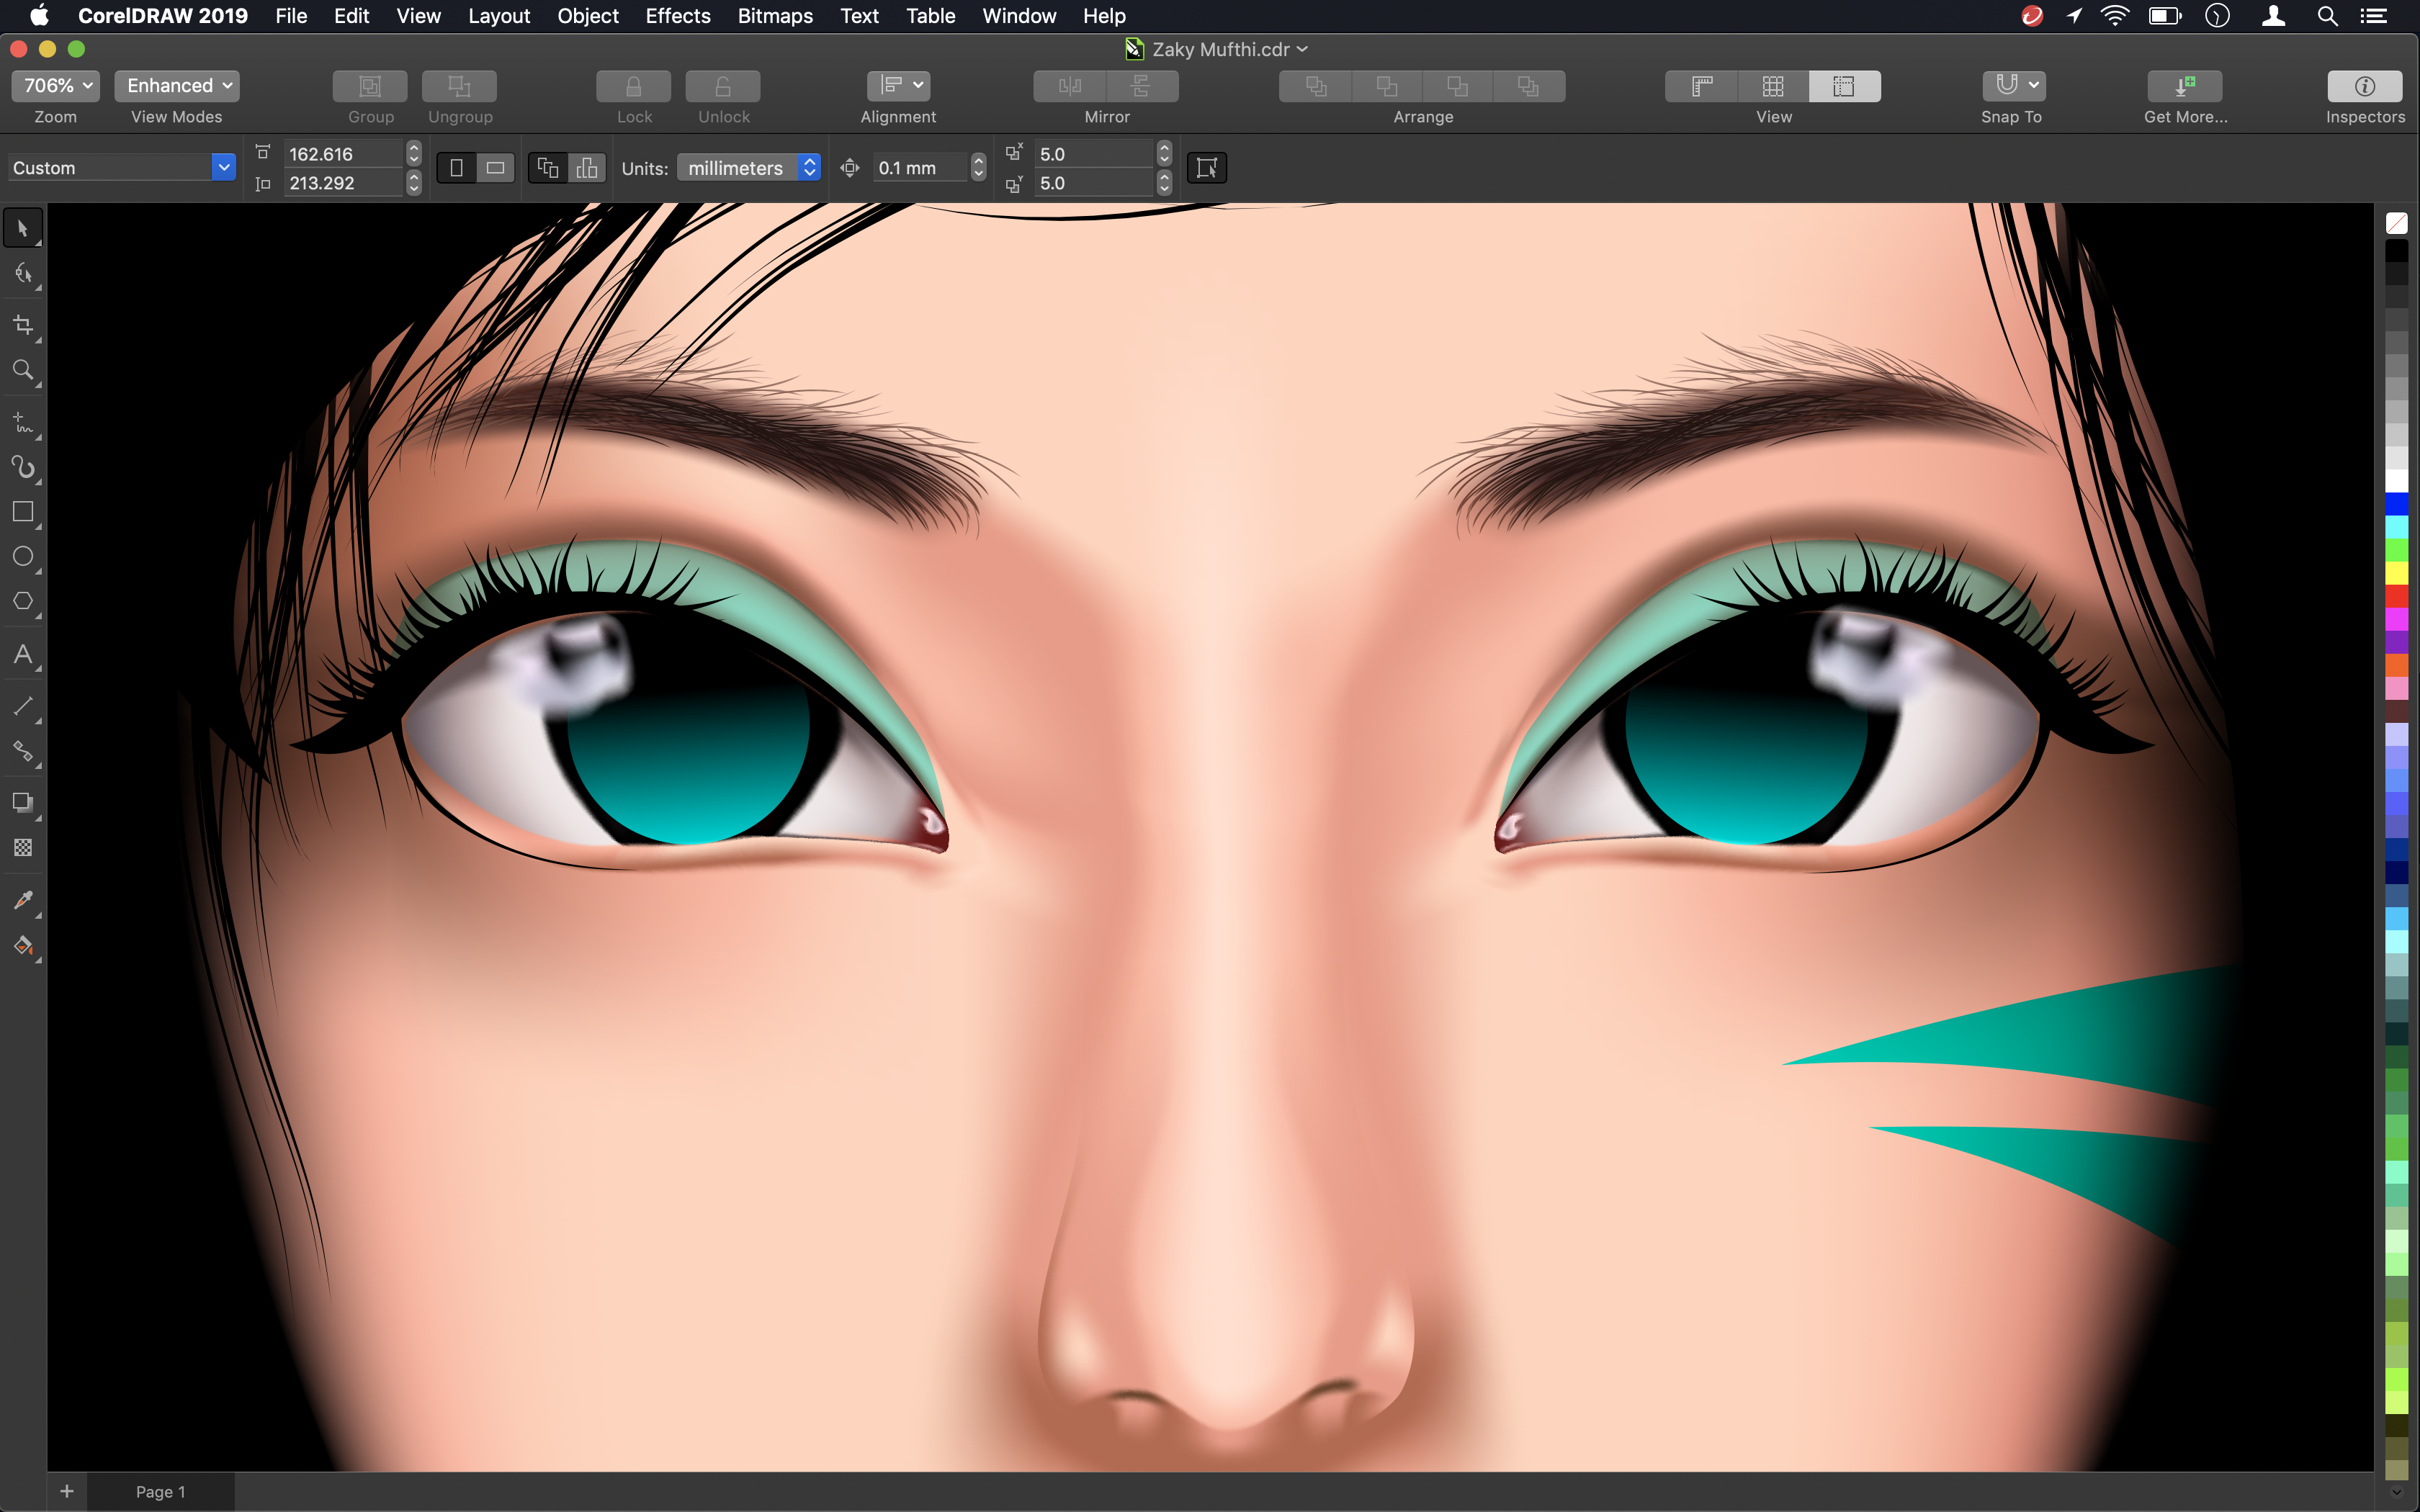 CorelDRAW 2019 for Mac